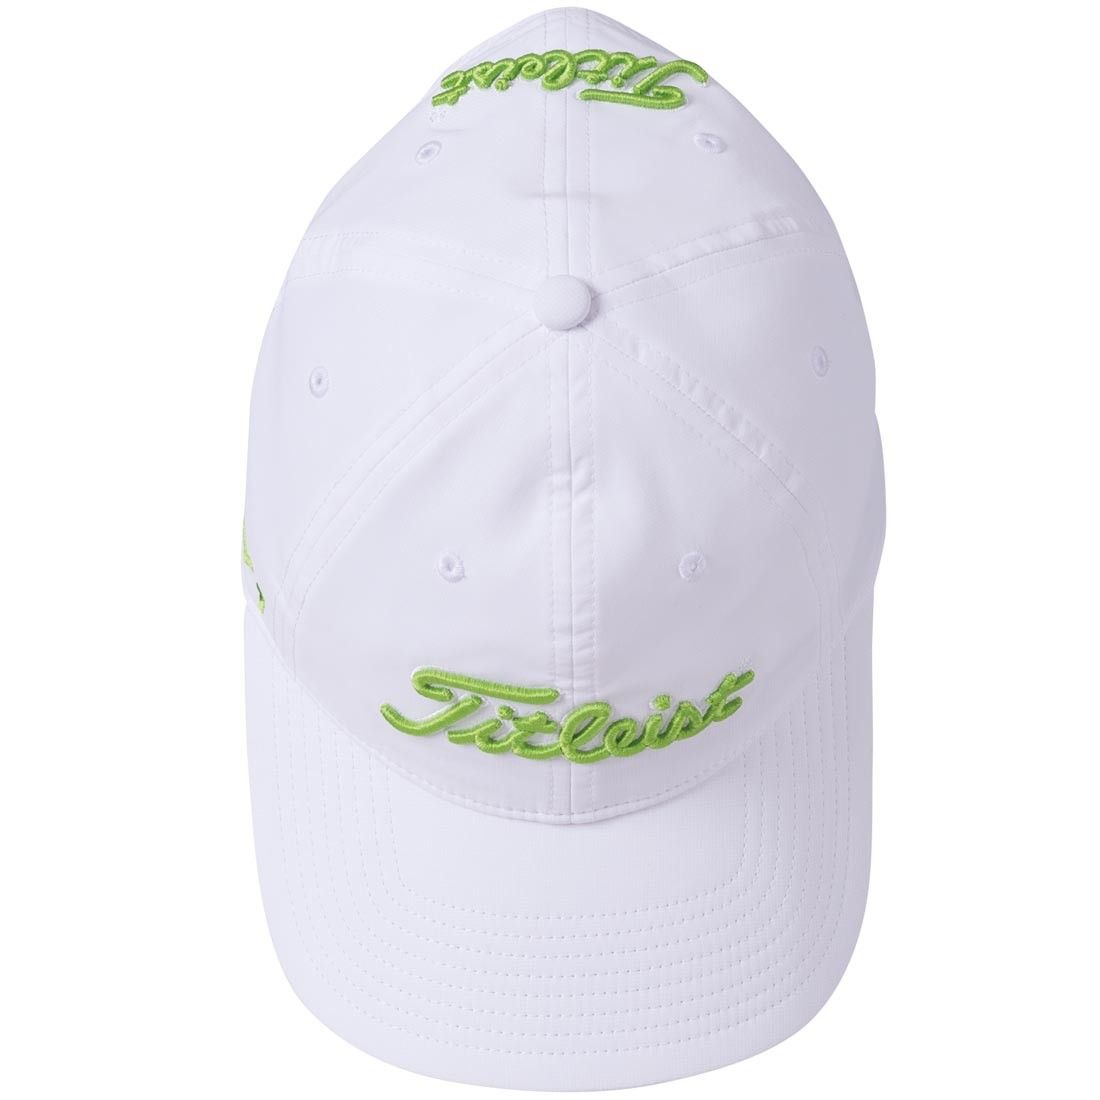 5444784ee299 Women s Titleist Performance Hat - Made with lightweight performance fabric  for…